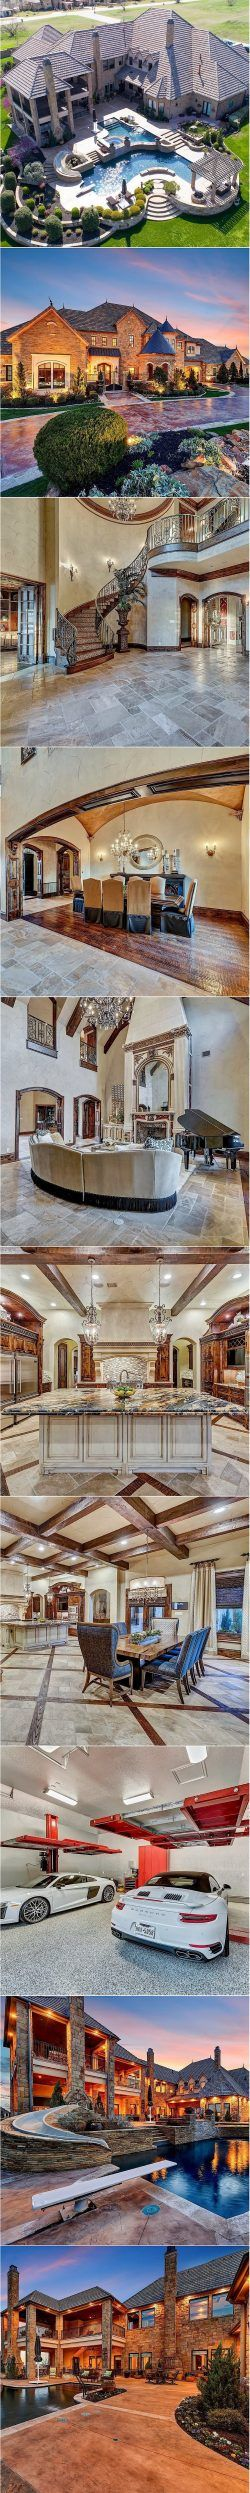 A private sanctuary redesigned in 2013. Spectacular entry boasts towering water features, Egyptian Crystal chandelier and 25 floor to ceiling glass walls. Two kitchens including commercial grade catering kitchen, wine tasting room, entertainment room, gym, spa, and theater! Master retreat with sitting area, 20 shower, and 3 story closet with floating staircase. Outdoor kitchen, luxurious […]